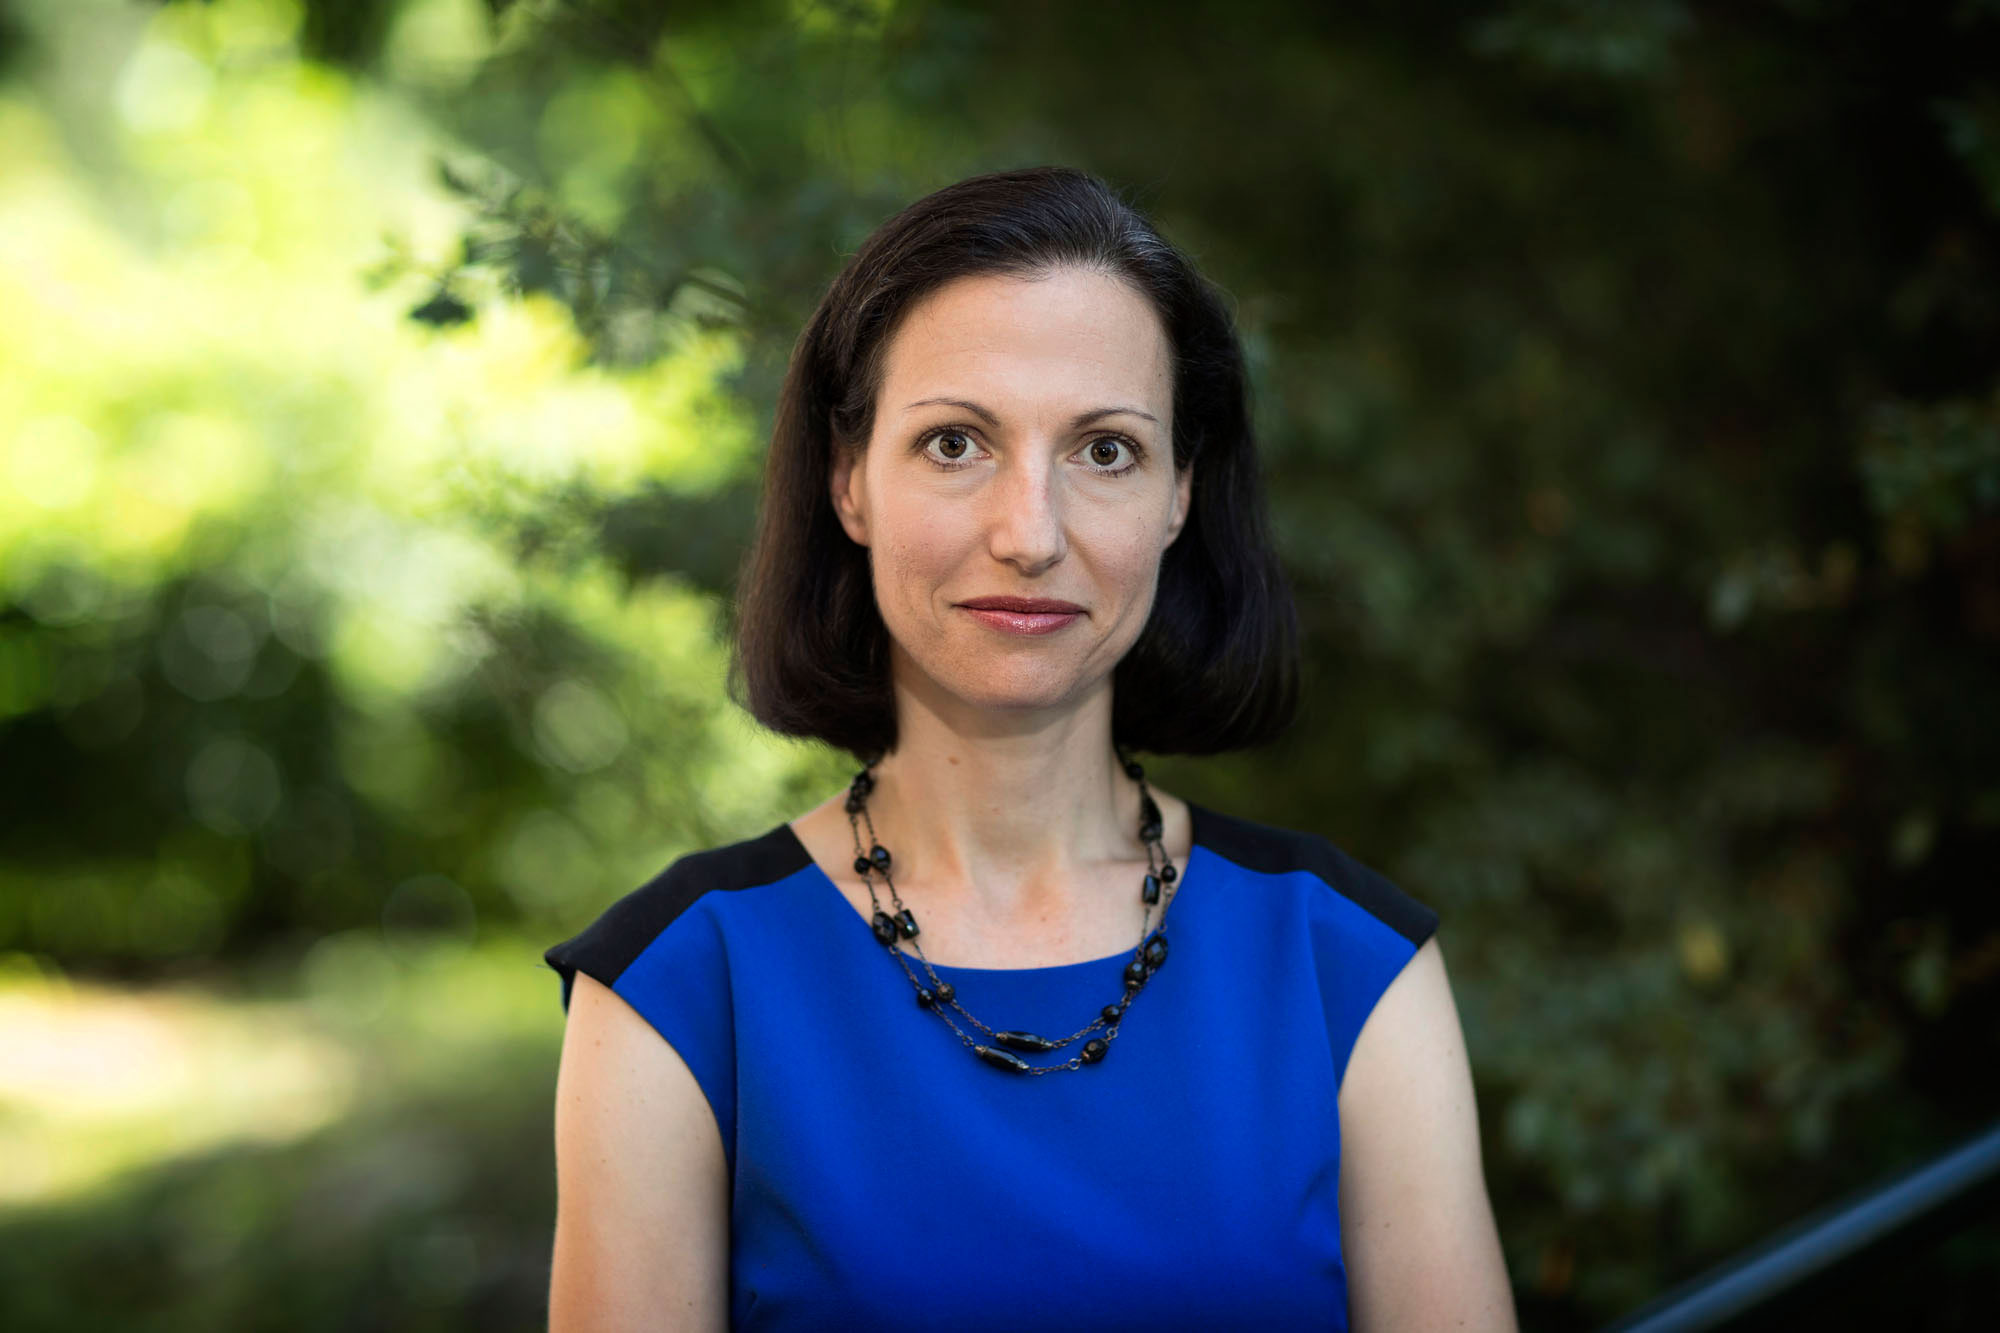 Bethany Teachman, a professor of psychology at UVA, is the director of MindTrails.